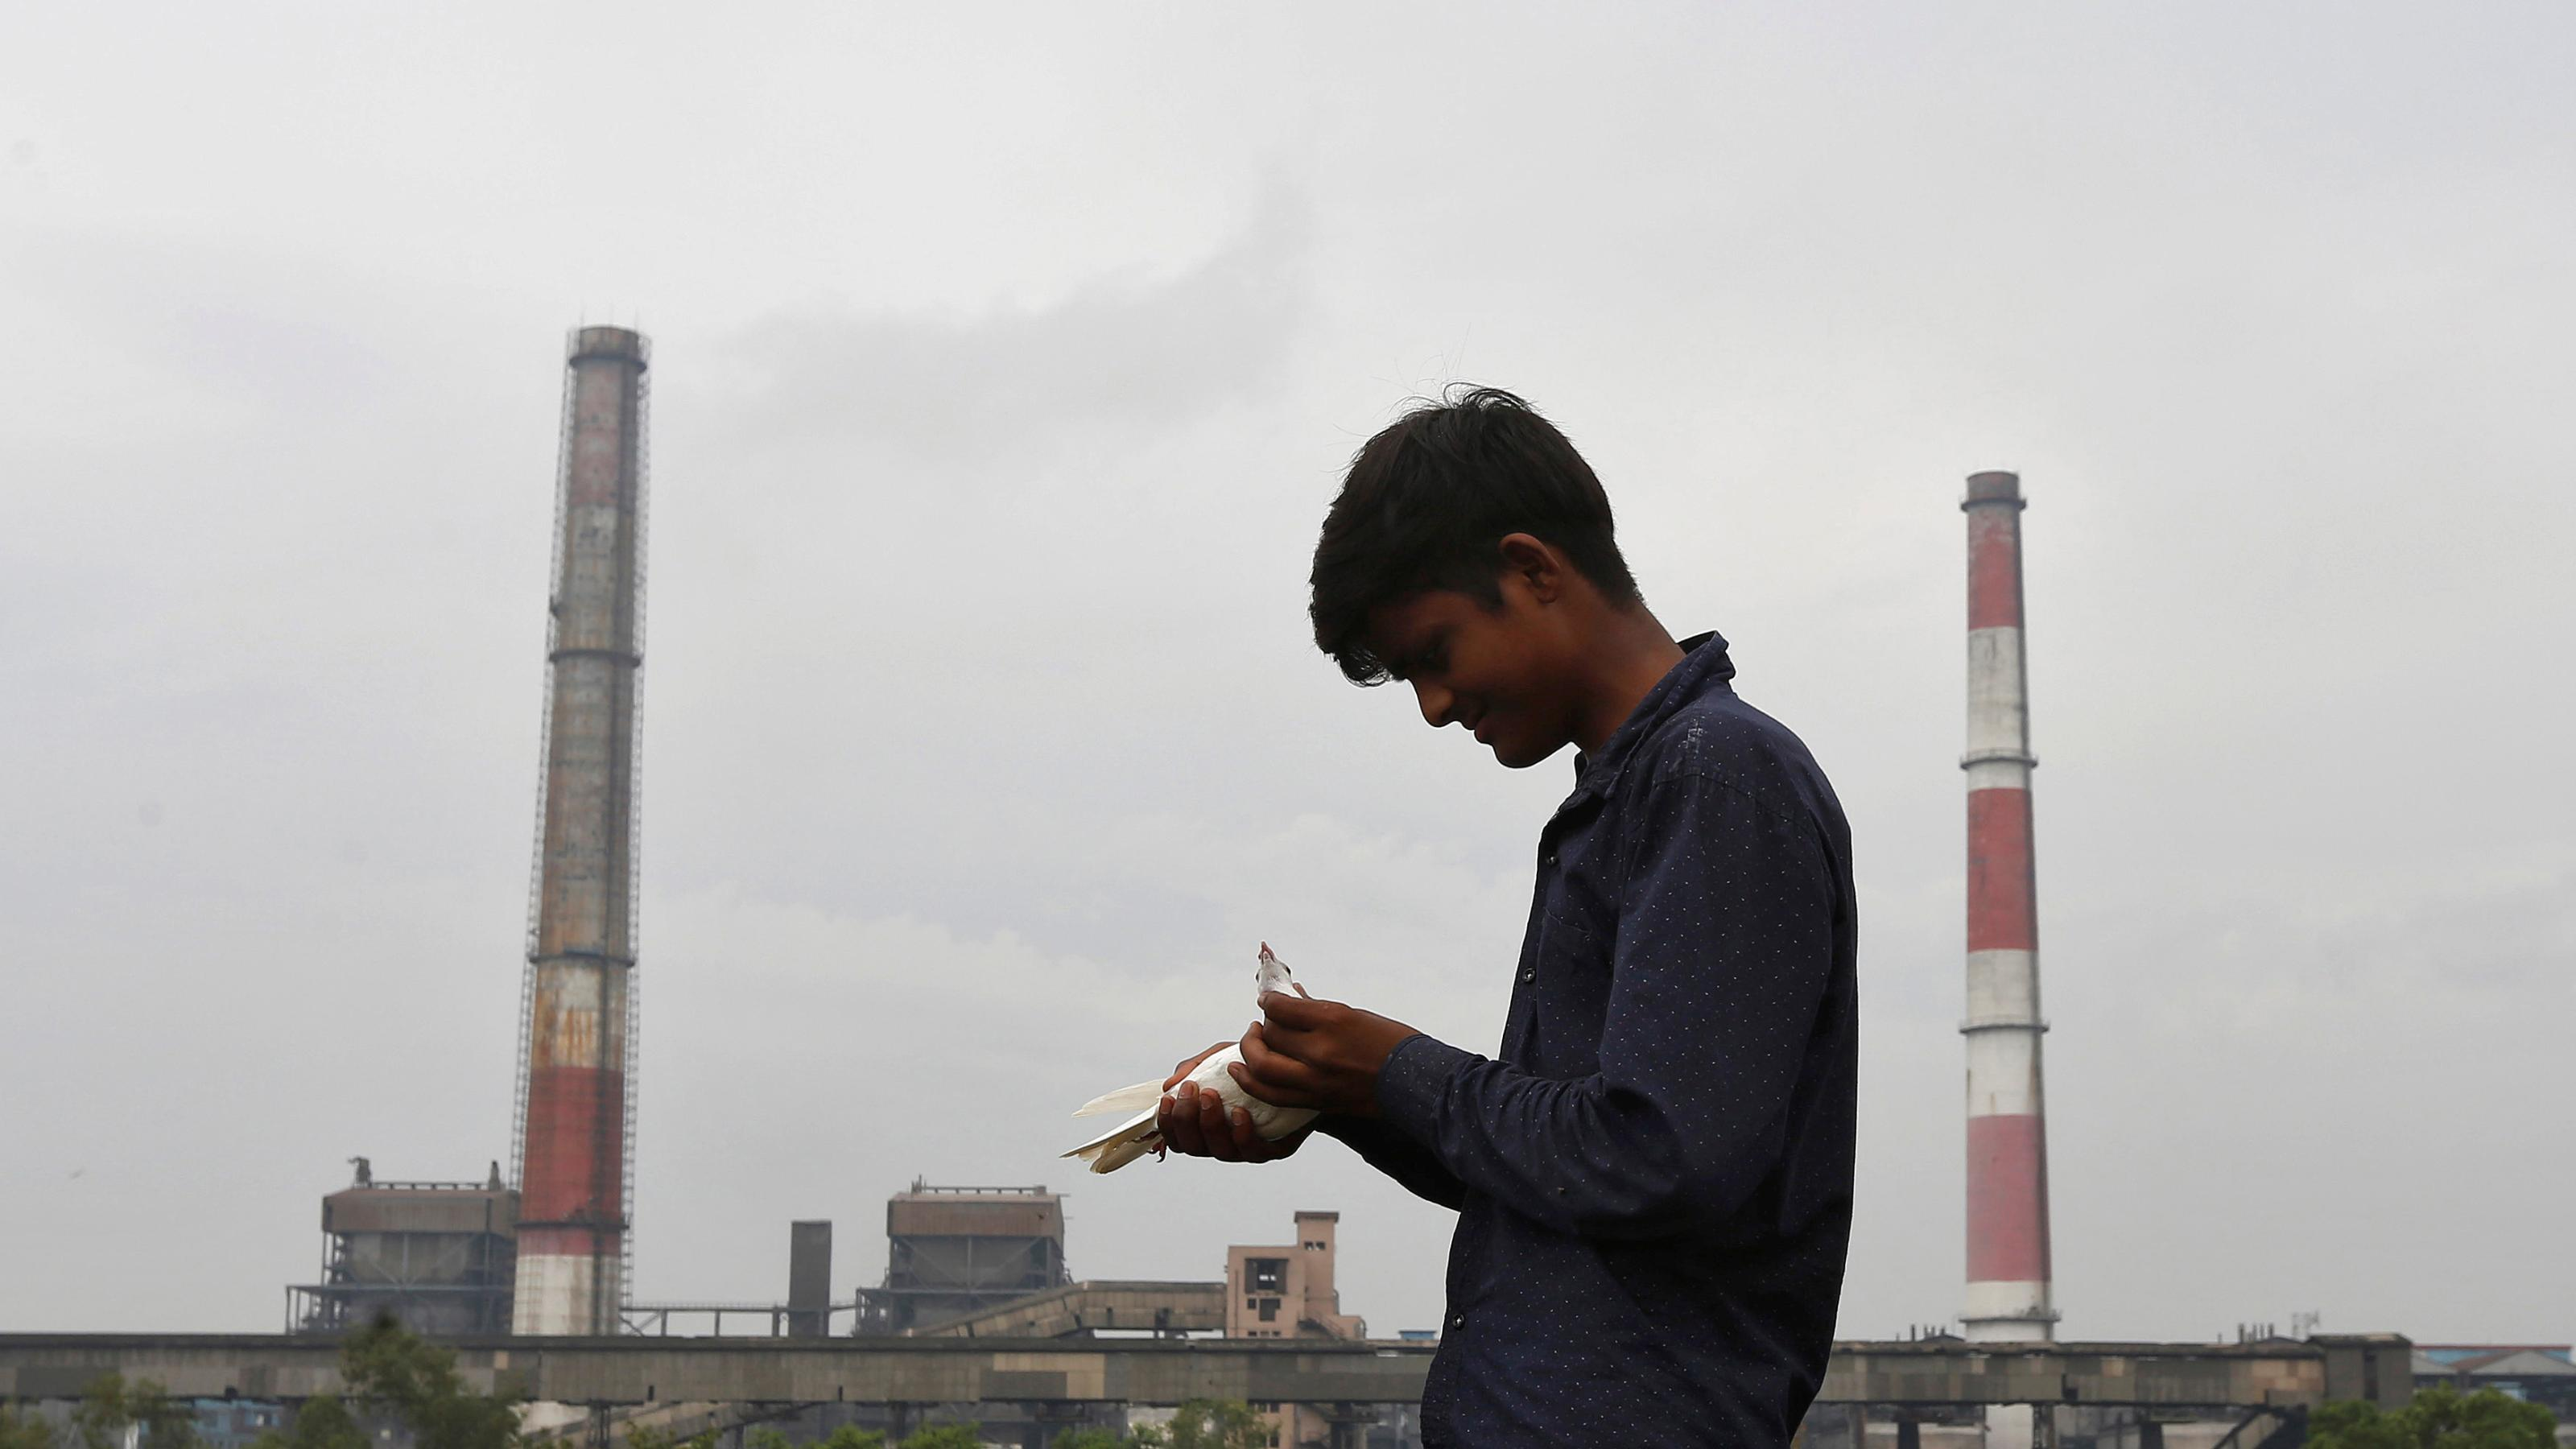 India's coal power plants aren't an excuse for climate inaction